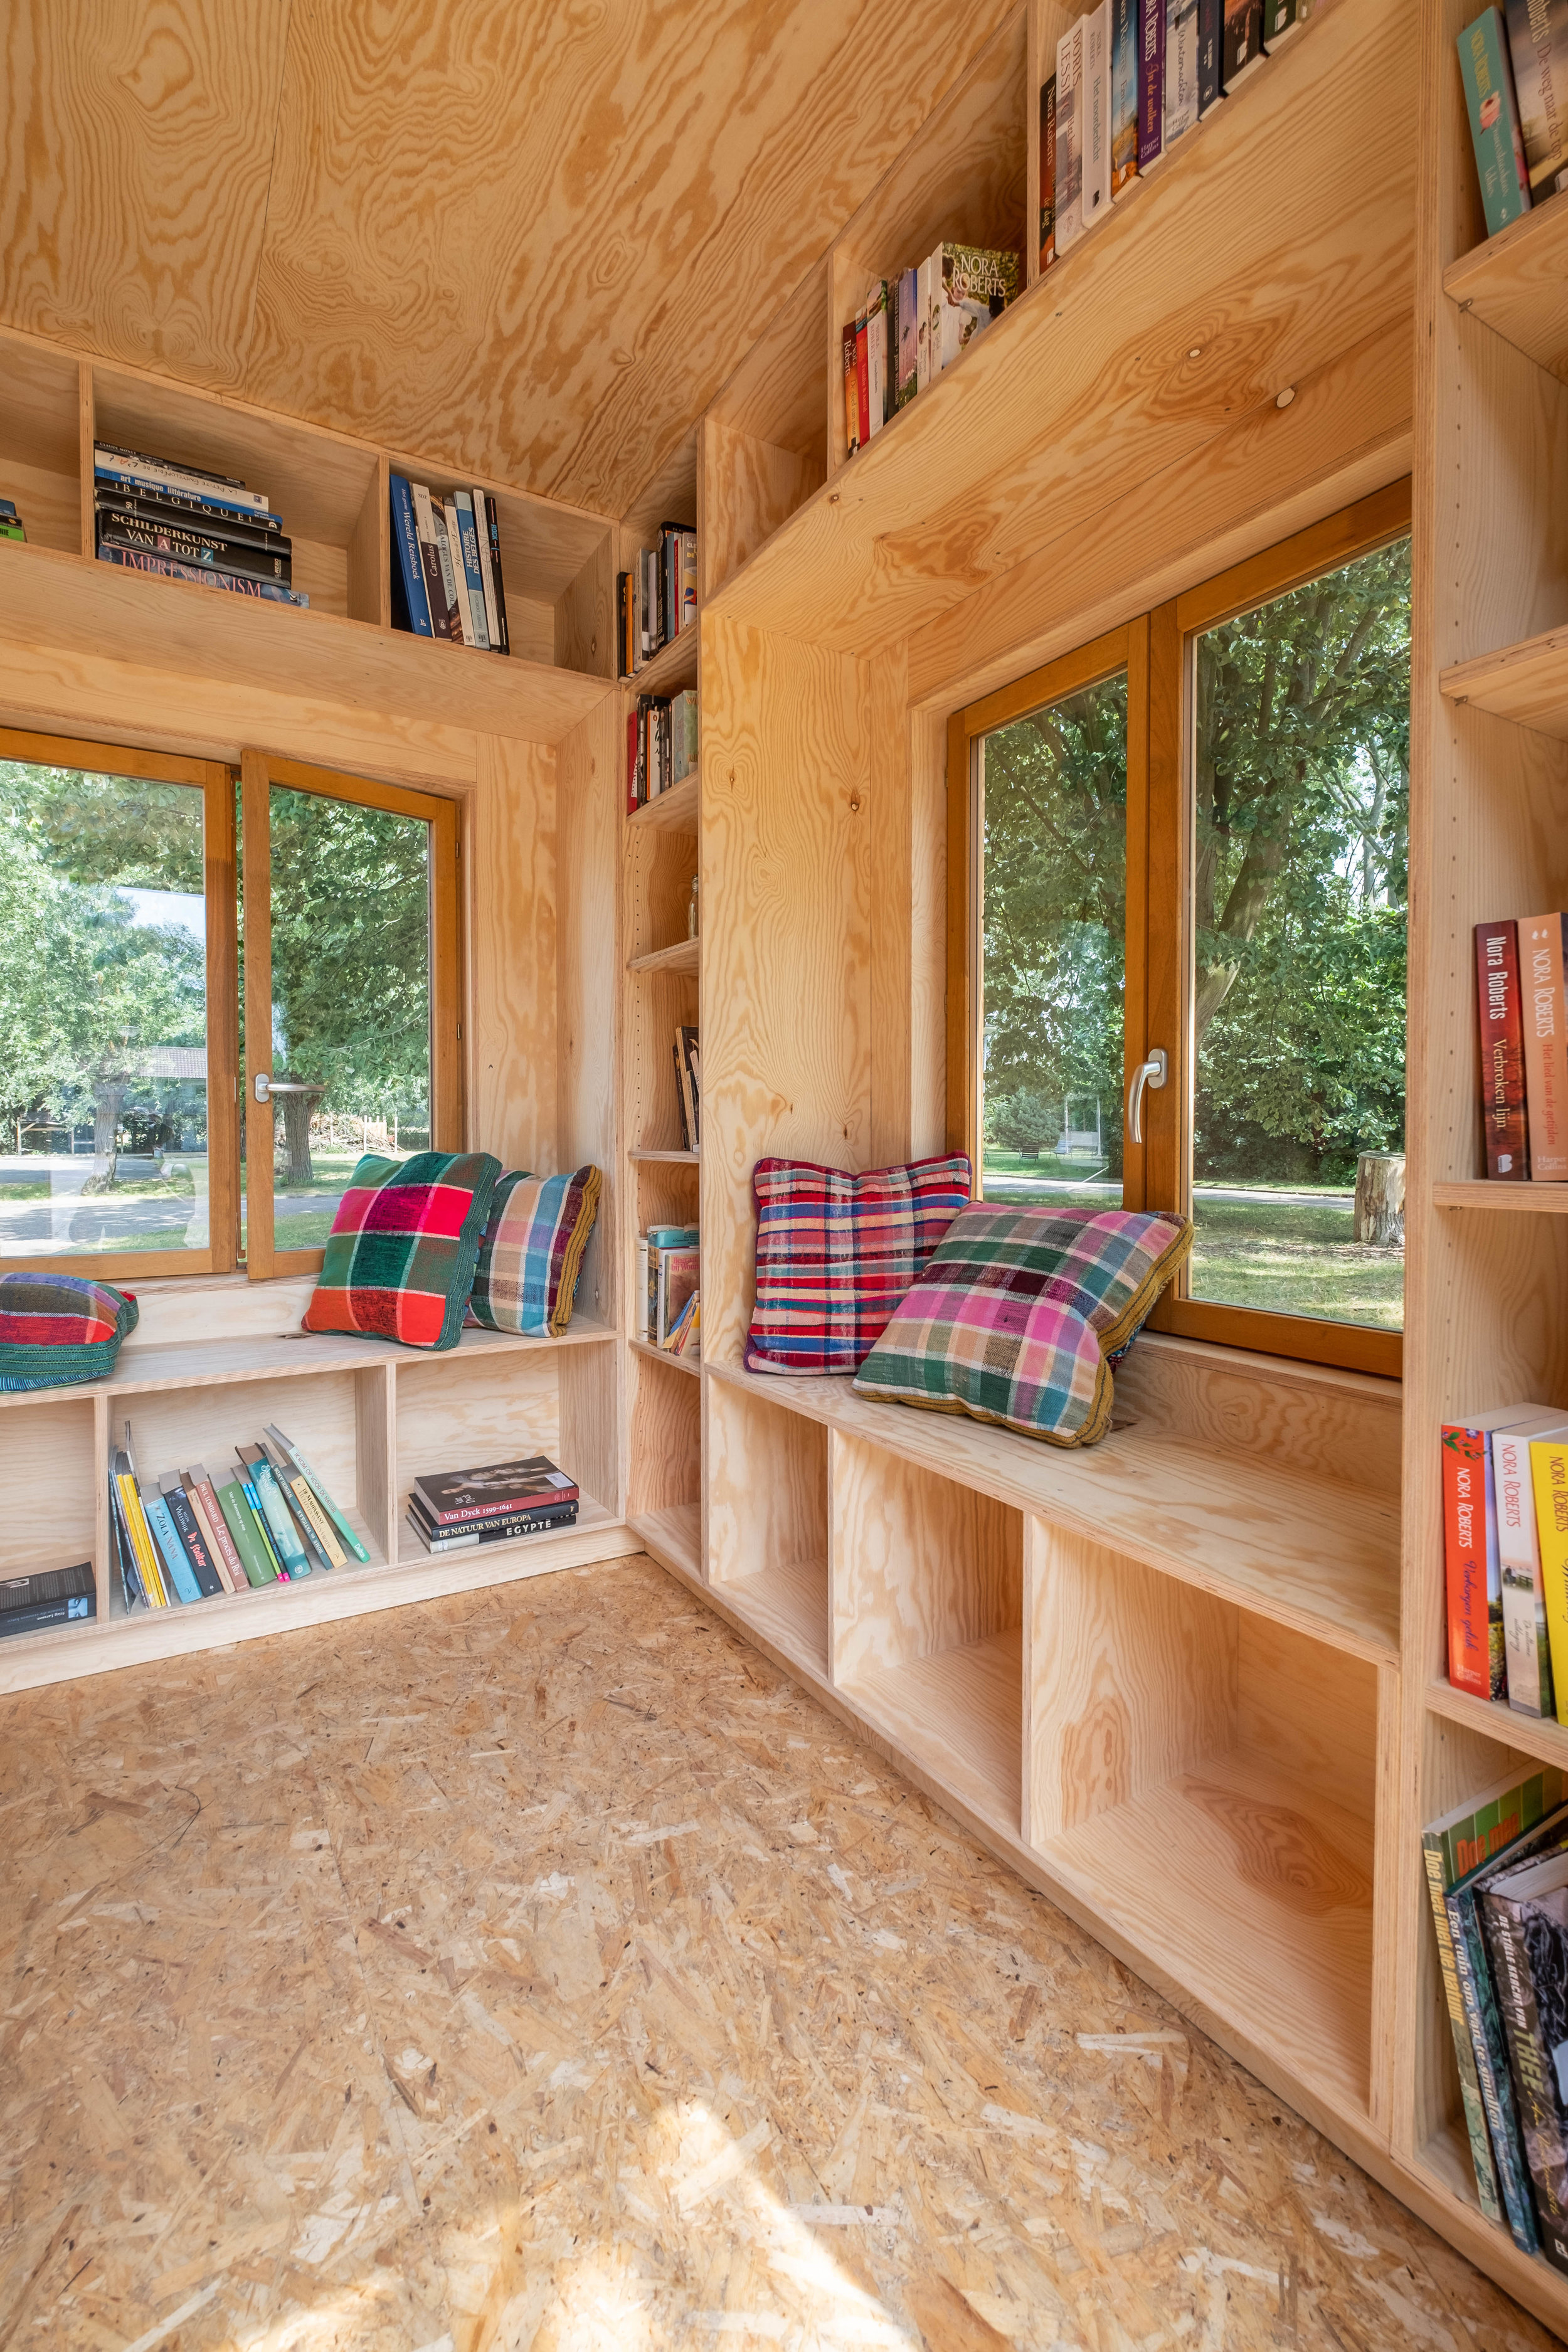 Outdoor Library - A quiet, fully furnished library for book-lovers or as a home-office.